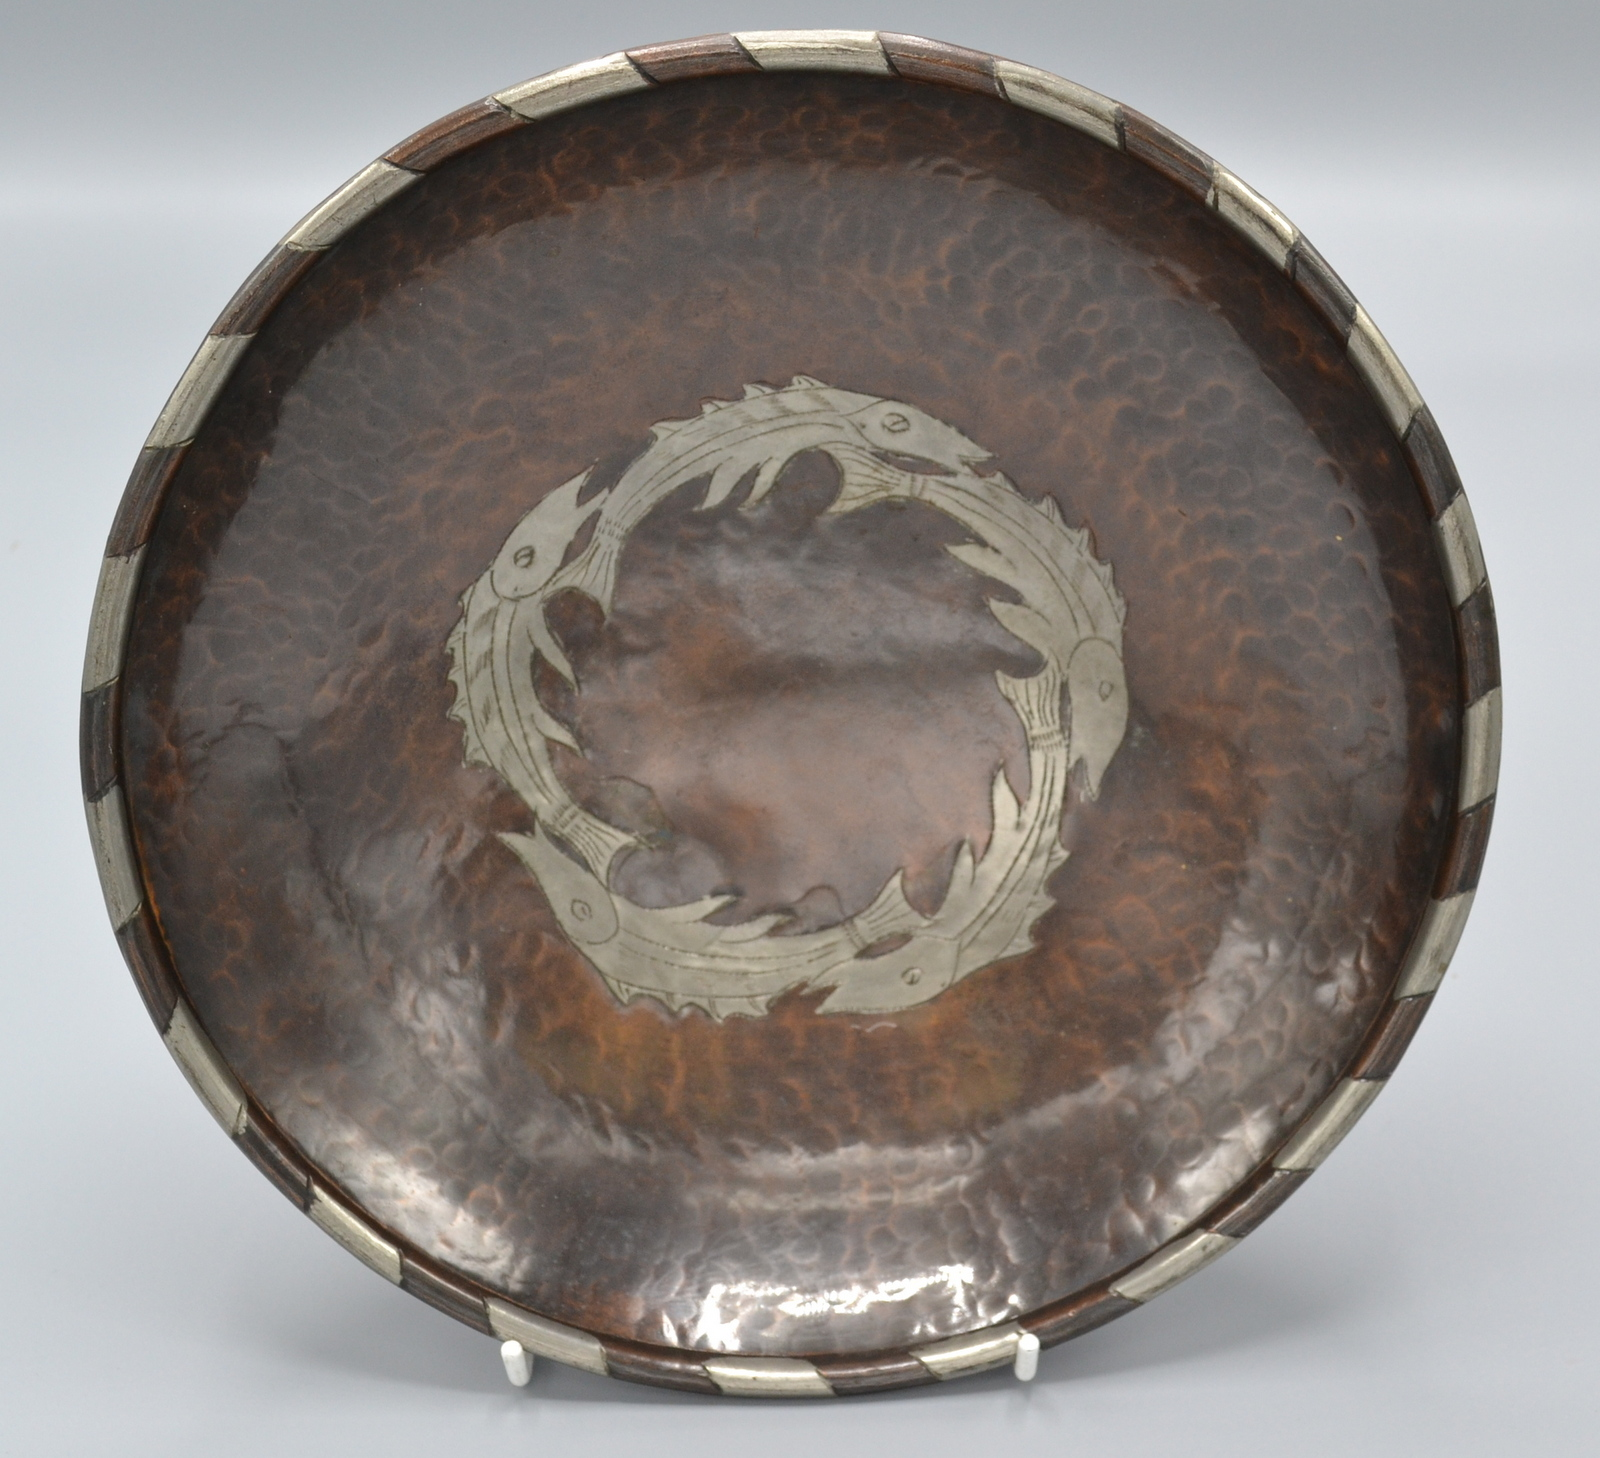 Lot 26 - Hugh Wallis, an Arts and Crafts circular, planished copper bowl,